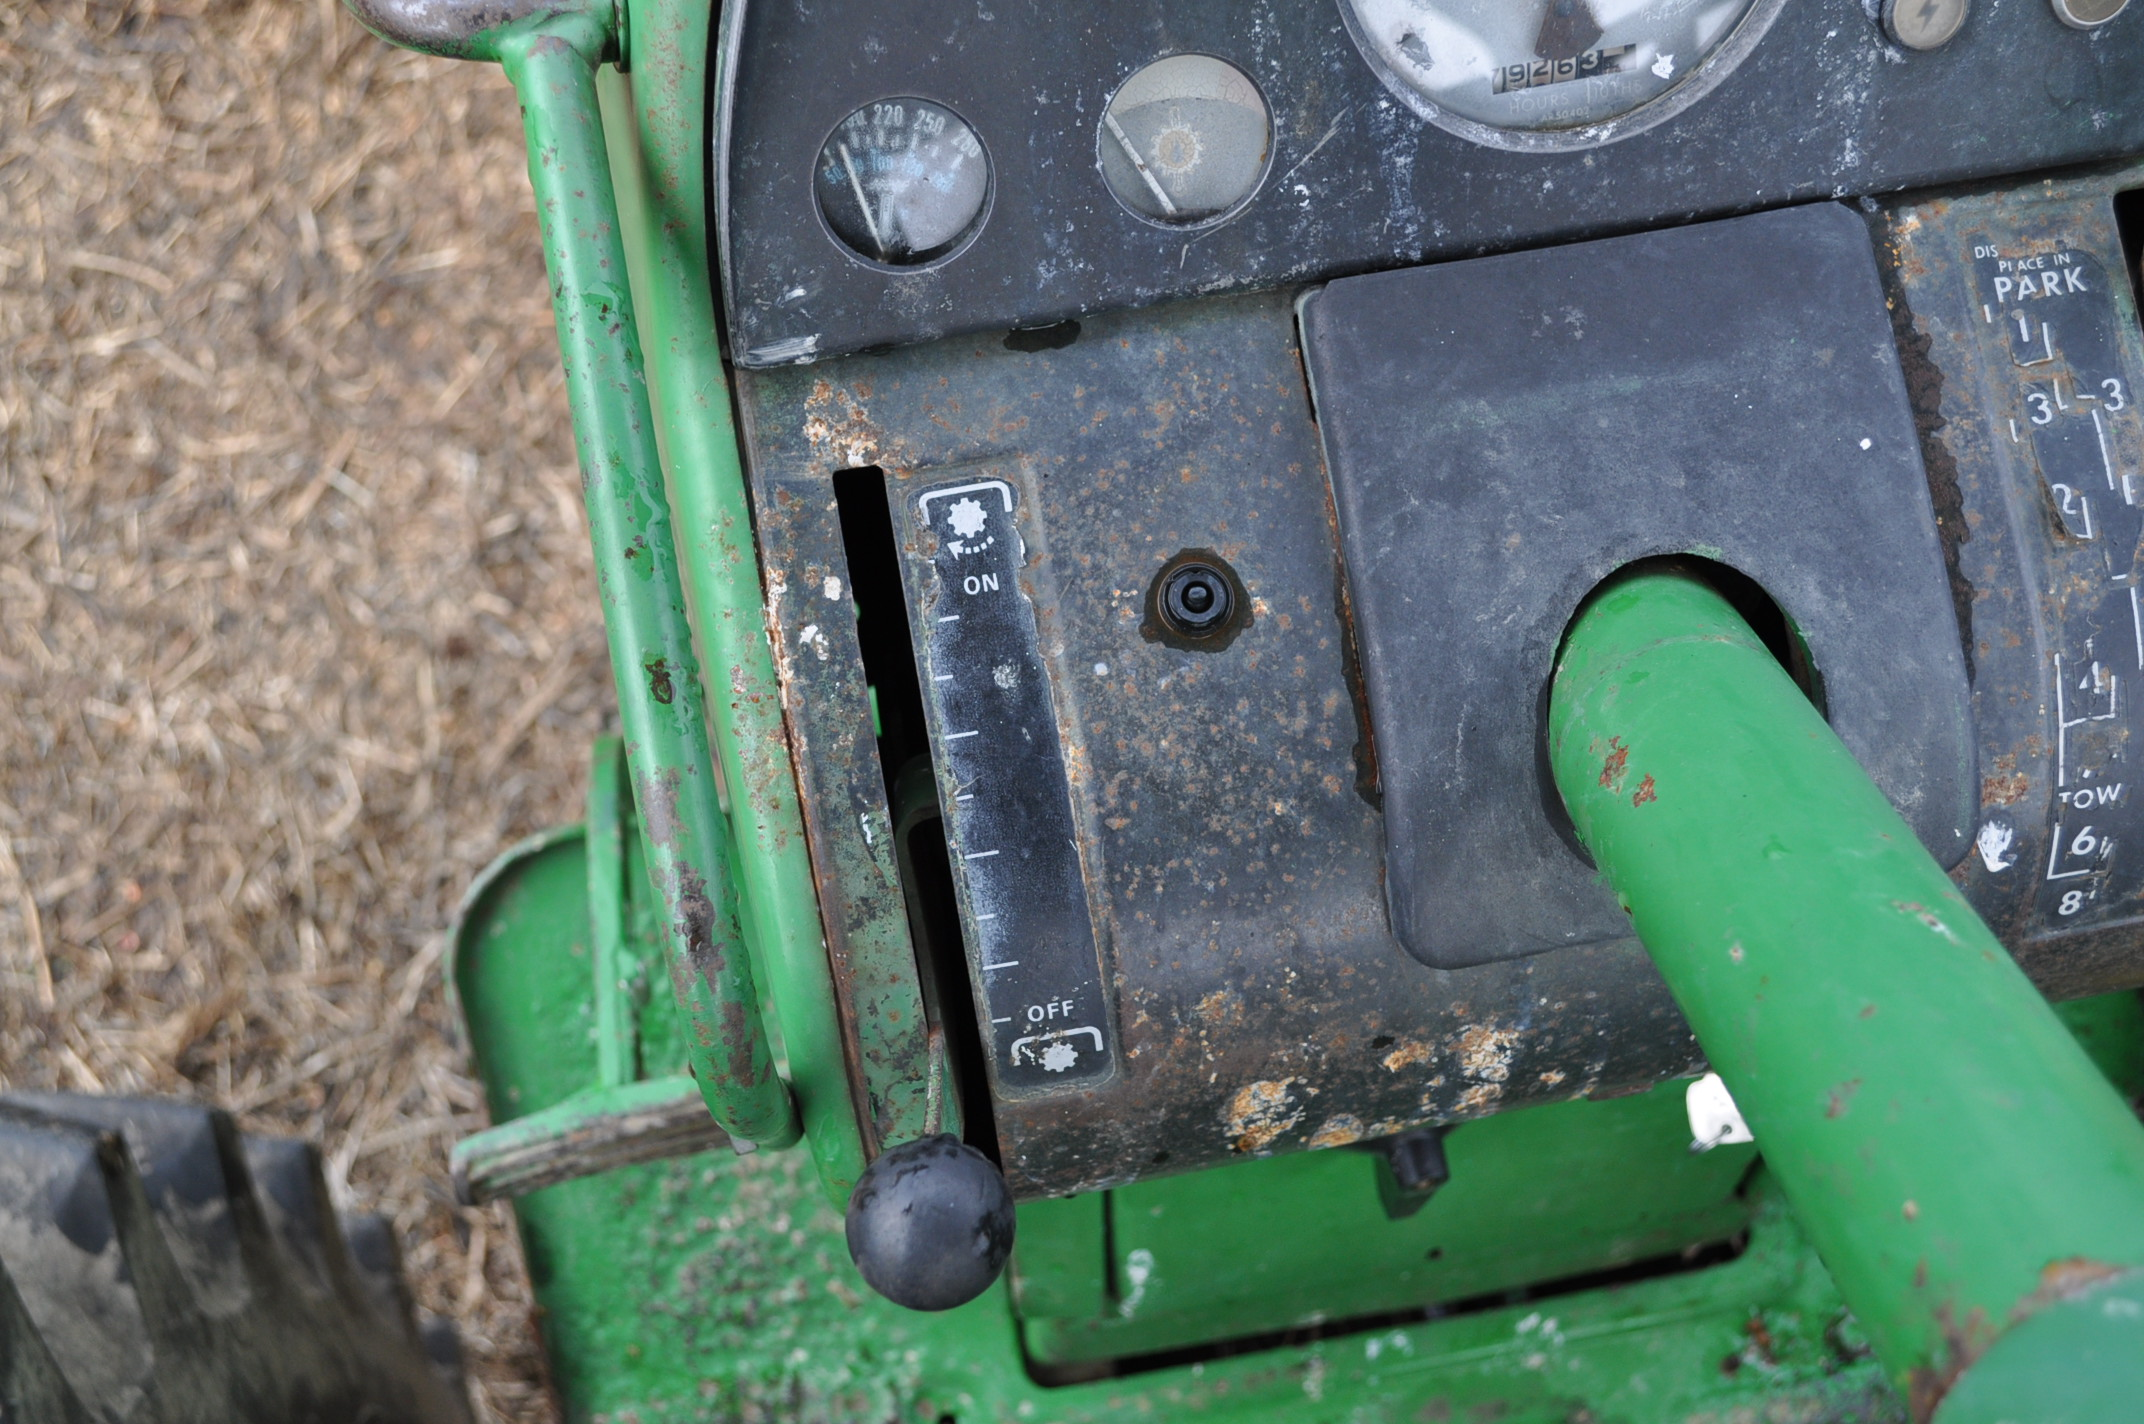 John Deere 4320 tractor, diesel, 18.4-38 duals, 10.00-16 wide front, Syncro, 2 hyd remotes, 540/1000 - Image 19 of 20